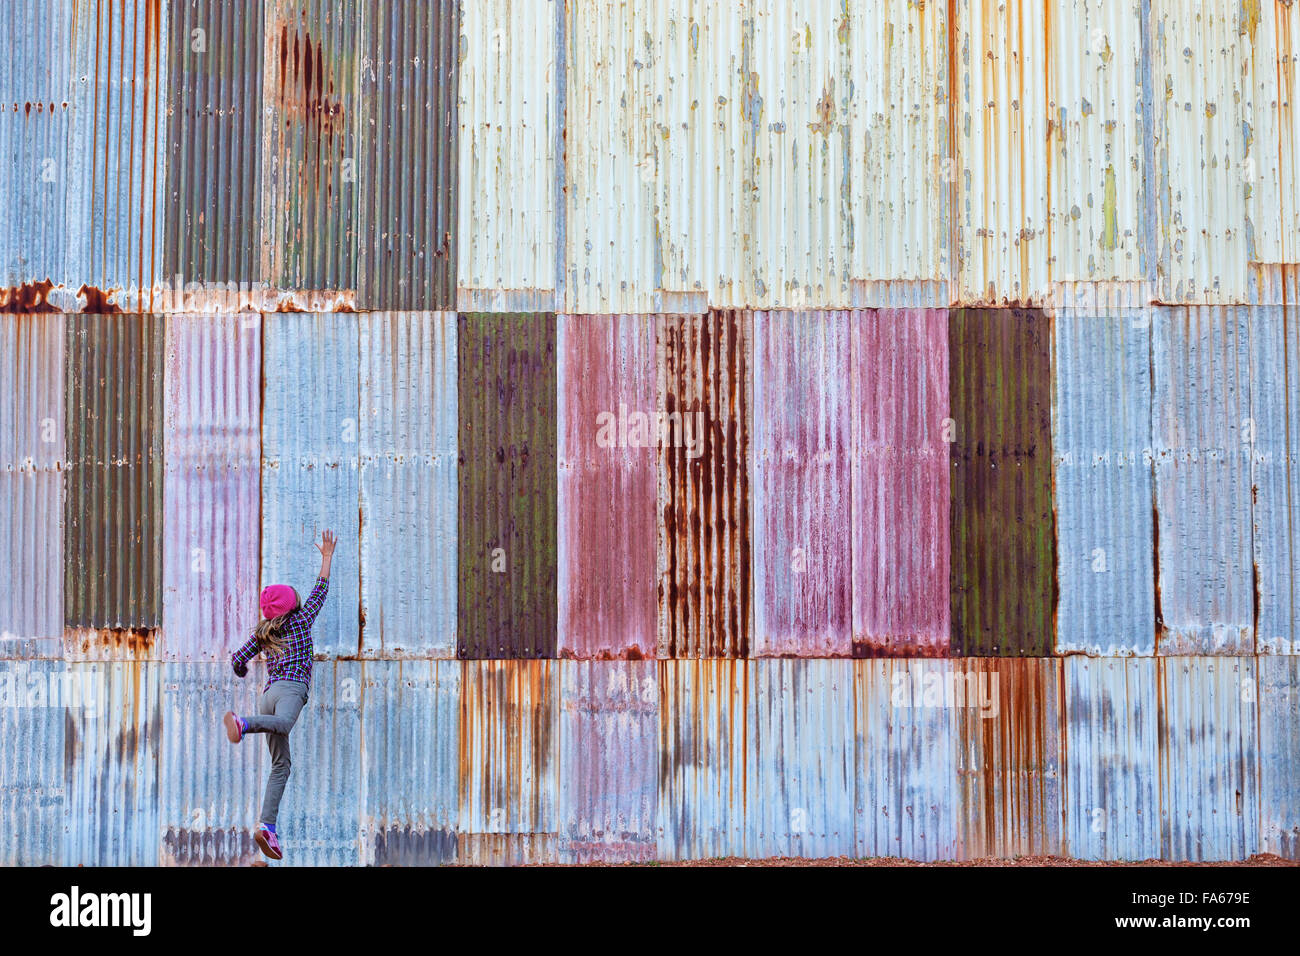 Girl jumping in front of a colorful corrugated metal wall, Kalgoorlie, Western Australia - Stock Image